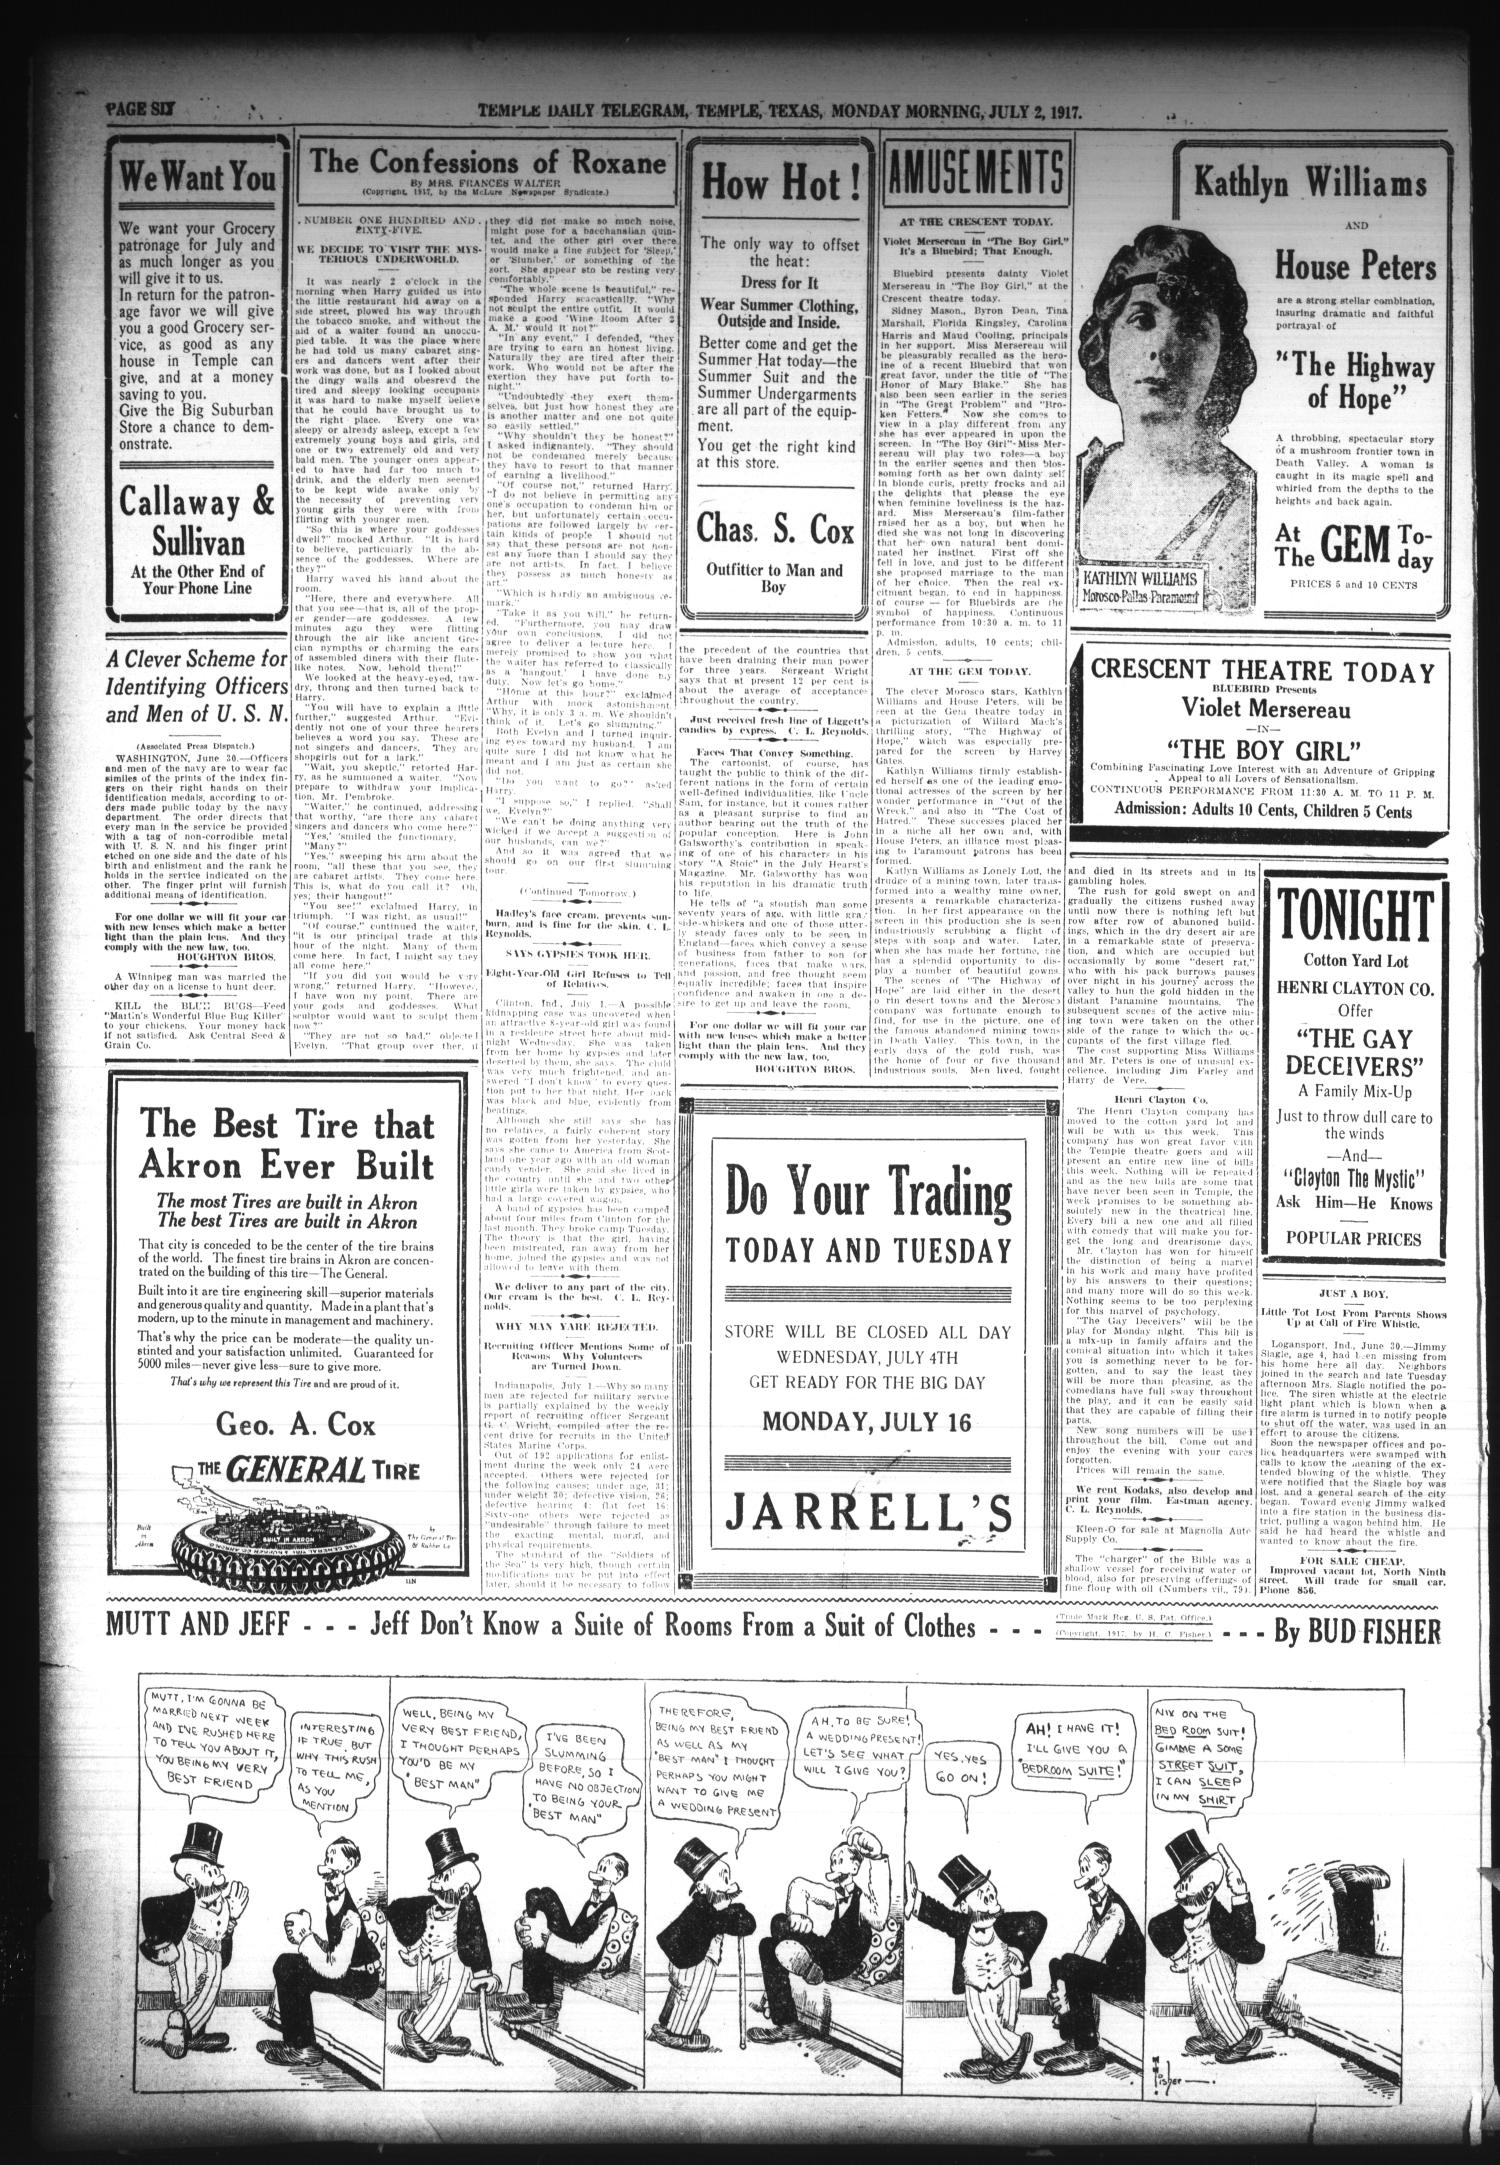 Temple Daily Telegram (Temple, Tex.), Vol. 10, No. 225, Ed. 1 Monday, July 2, 1917                                                                                                      [Sequence #]: 6 of 6